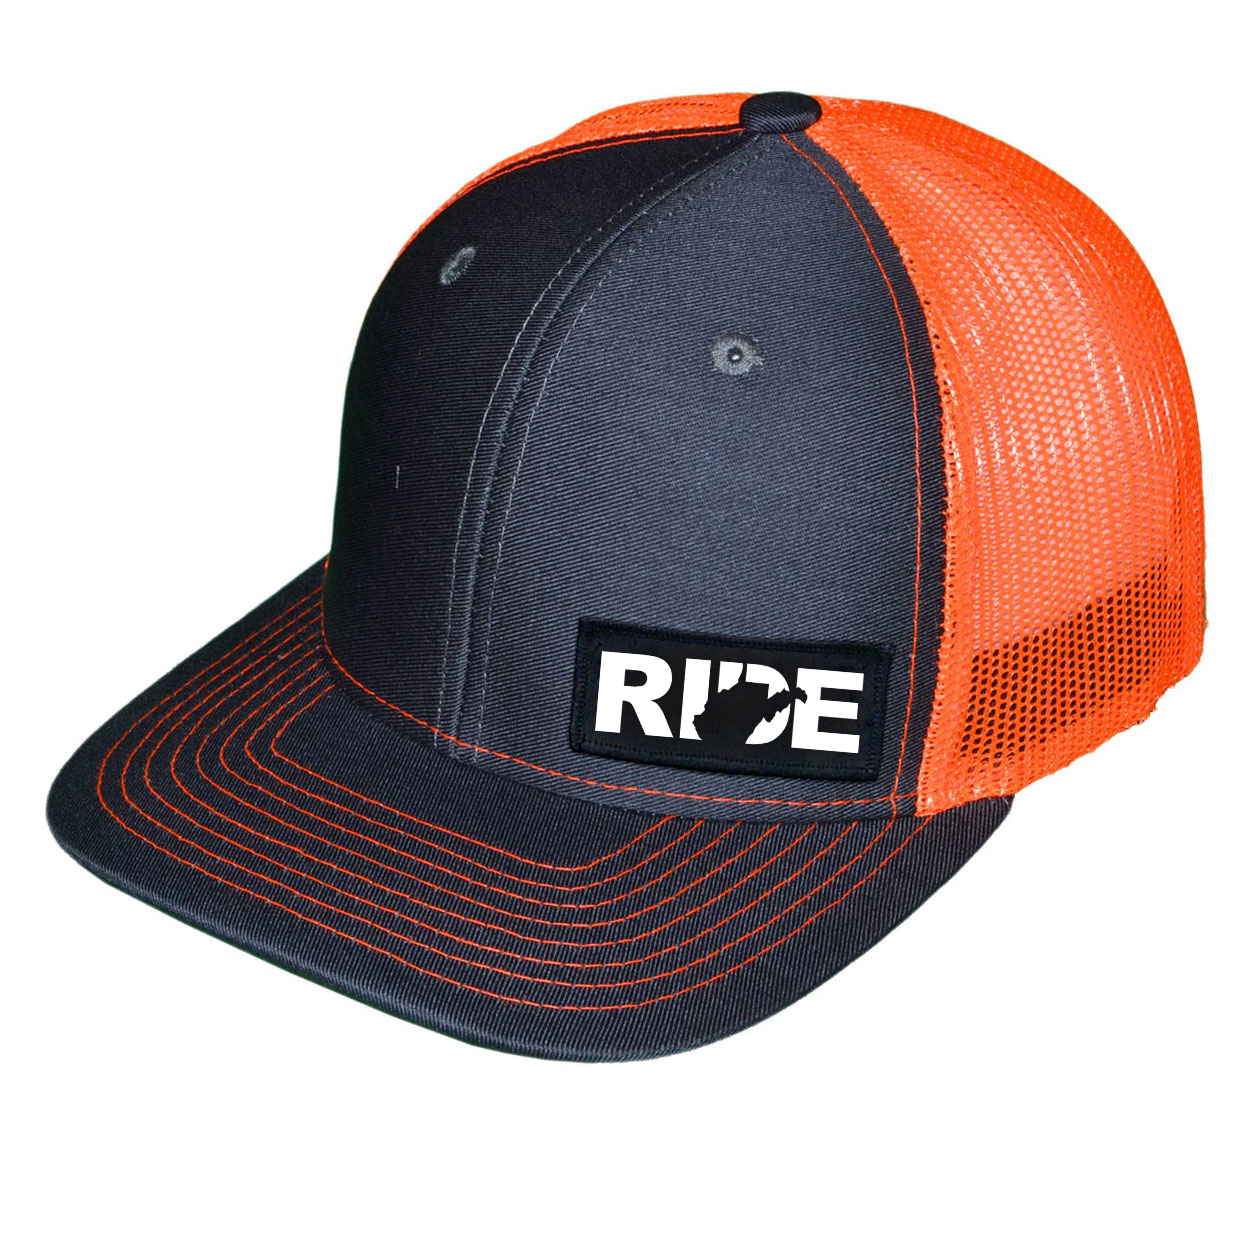 Ride West Virginia Night Out Woven Patch Snapback Trucker Hat Dark Gray/Orange (White Logo)